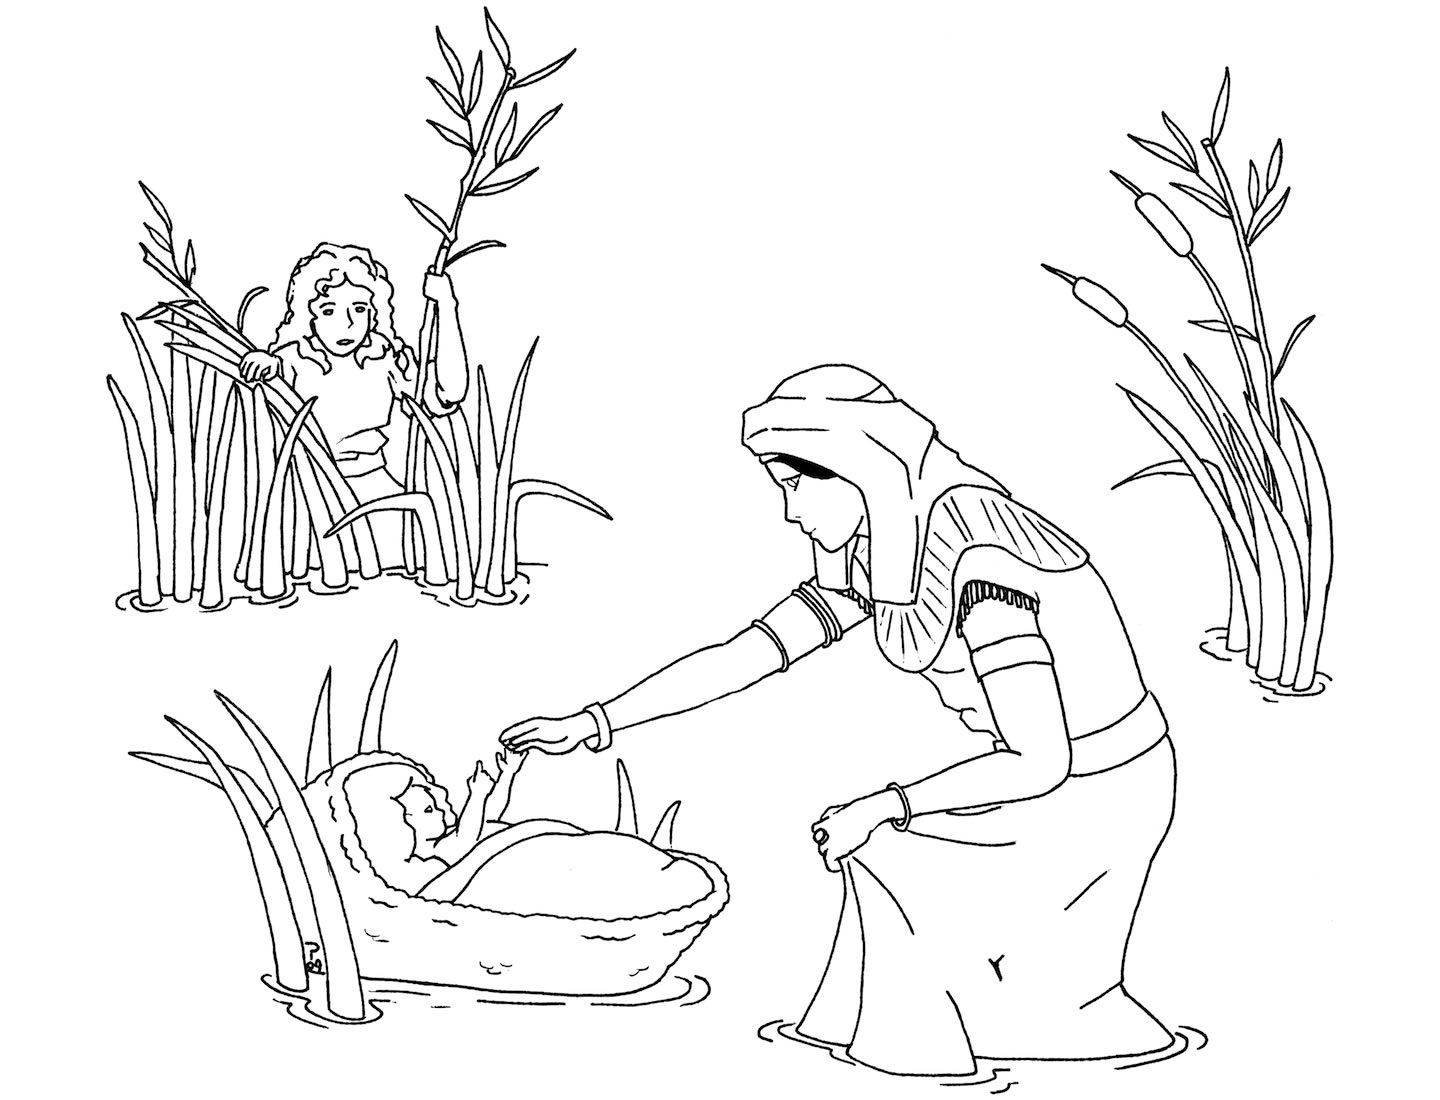 moses coloring pages moses printable coloring pages coloring moses pages